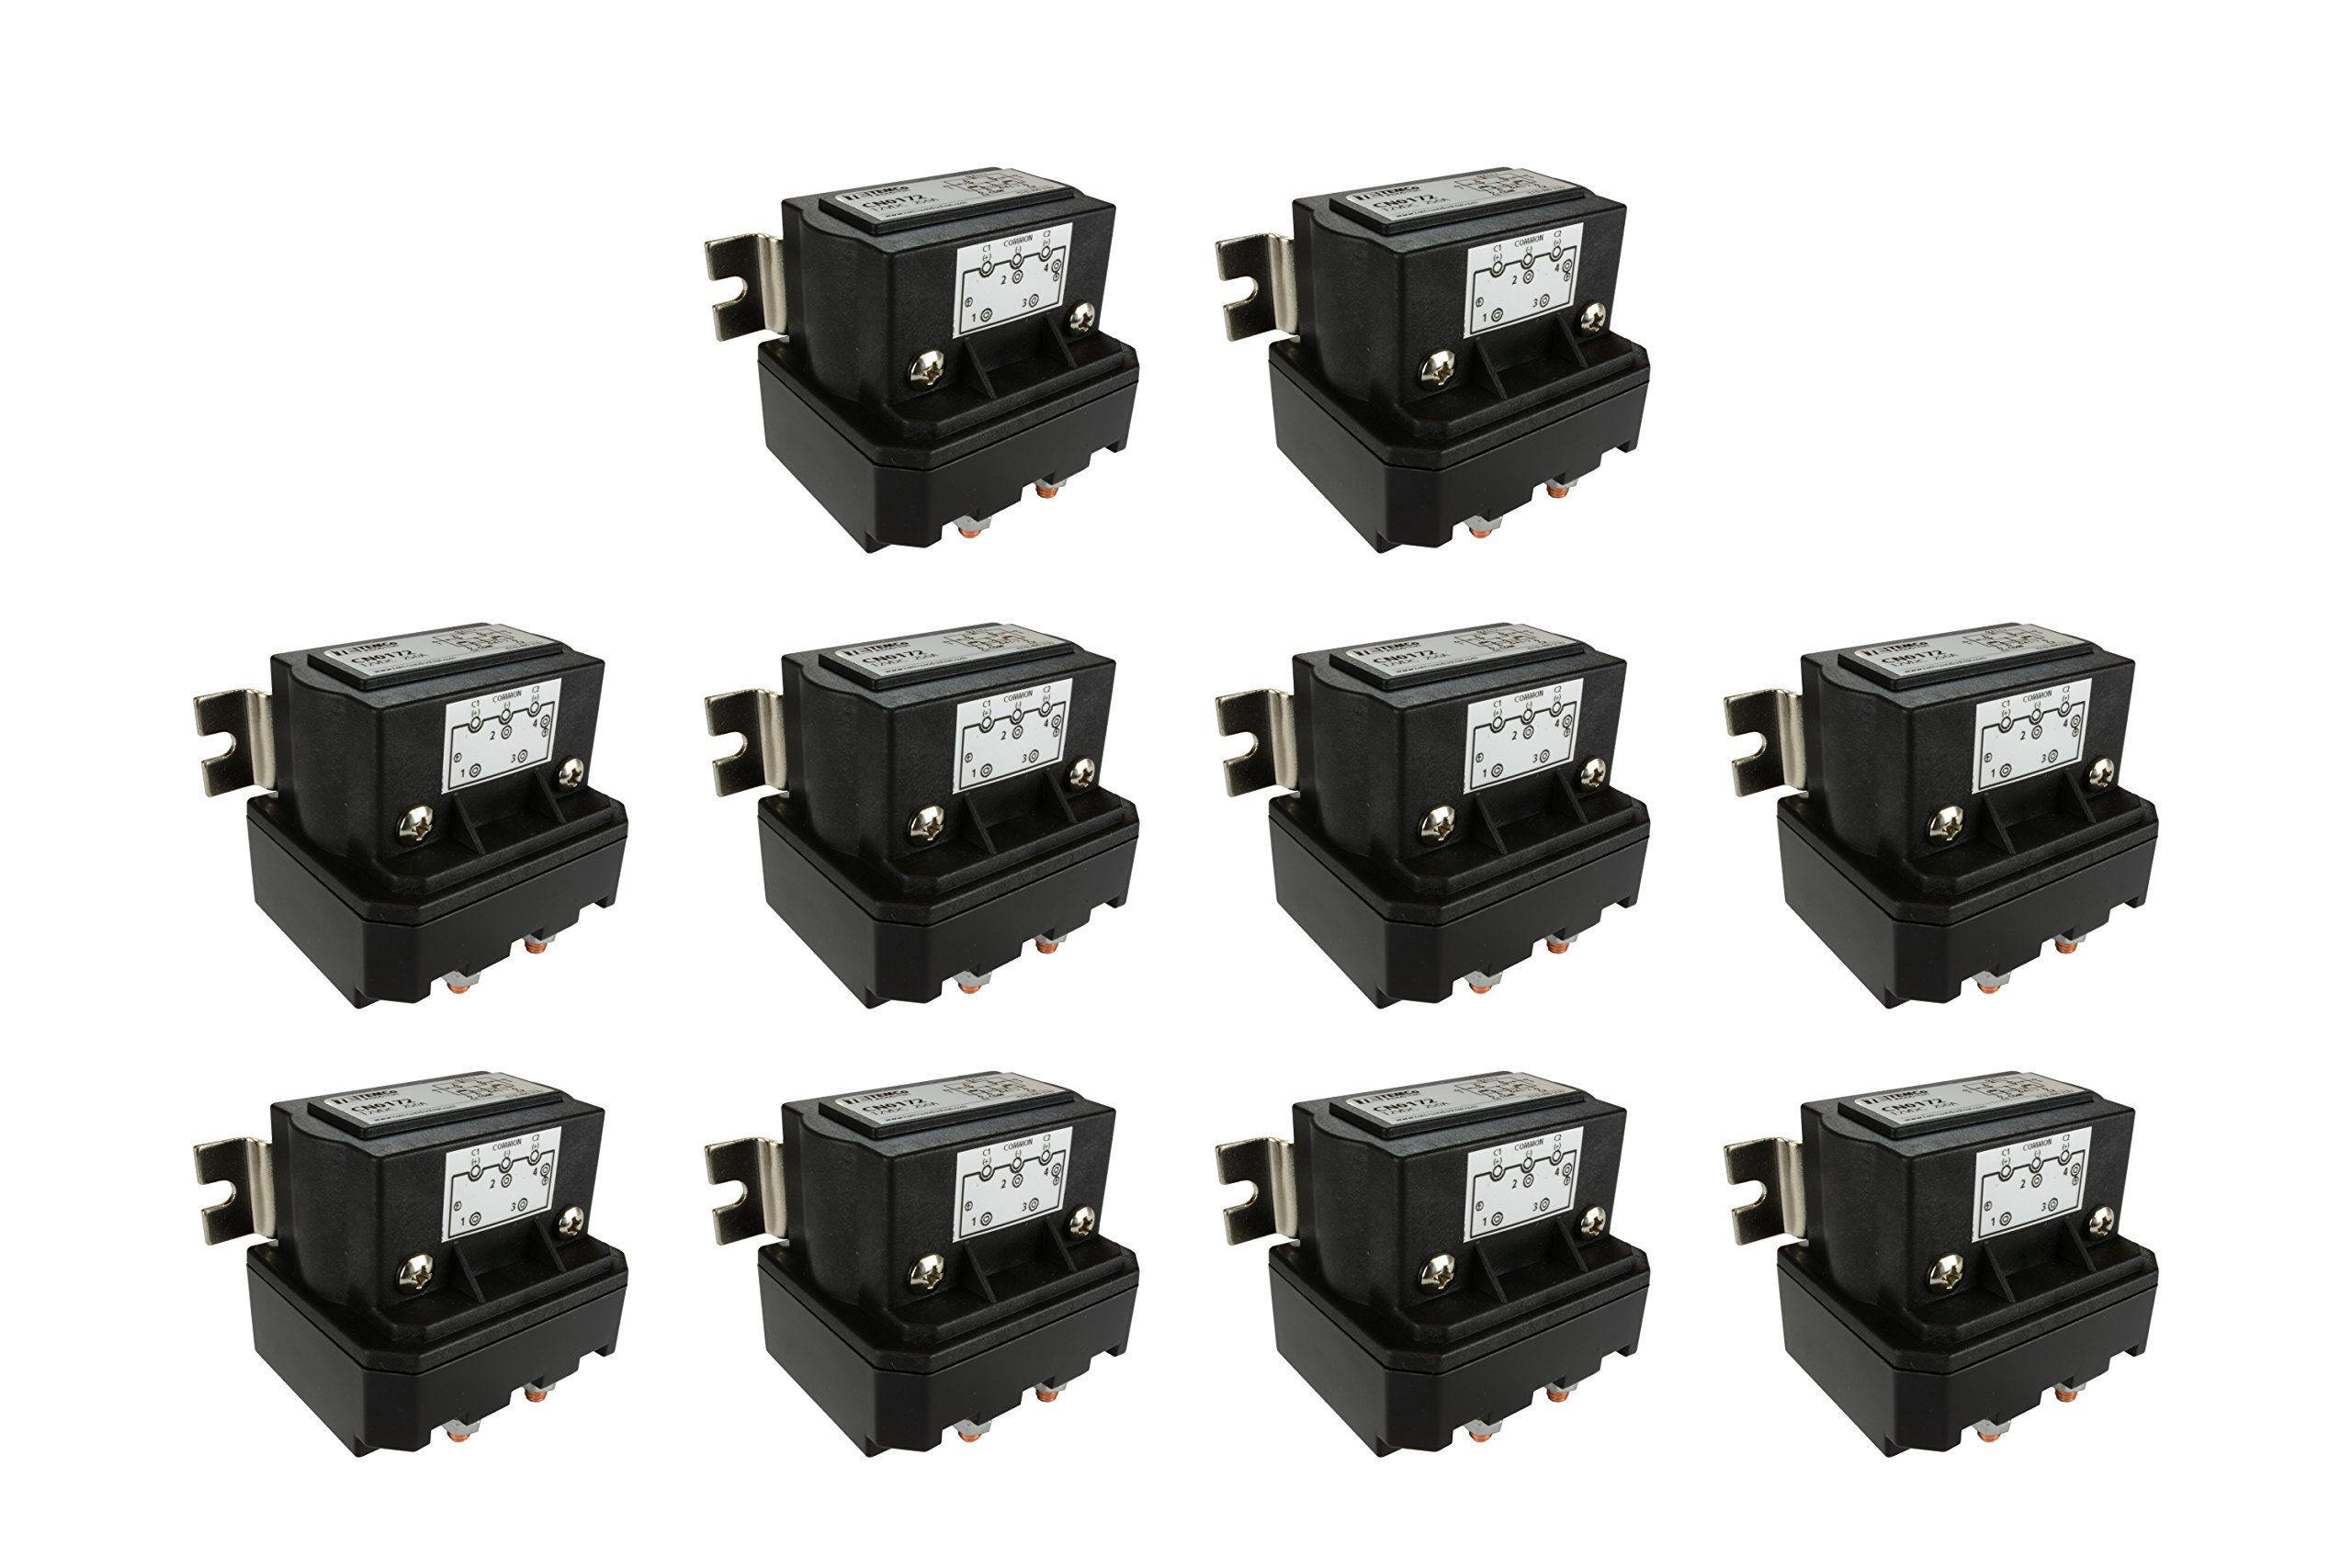 Temco 10 LOT 250 Amps DC Winch Motor Reversing Solenoid Relay Switch 12 Volt Contactor 5 Year Warranty